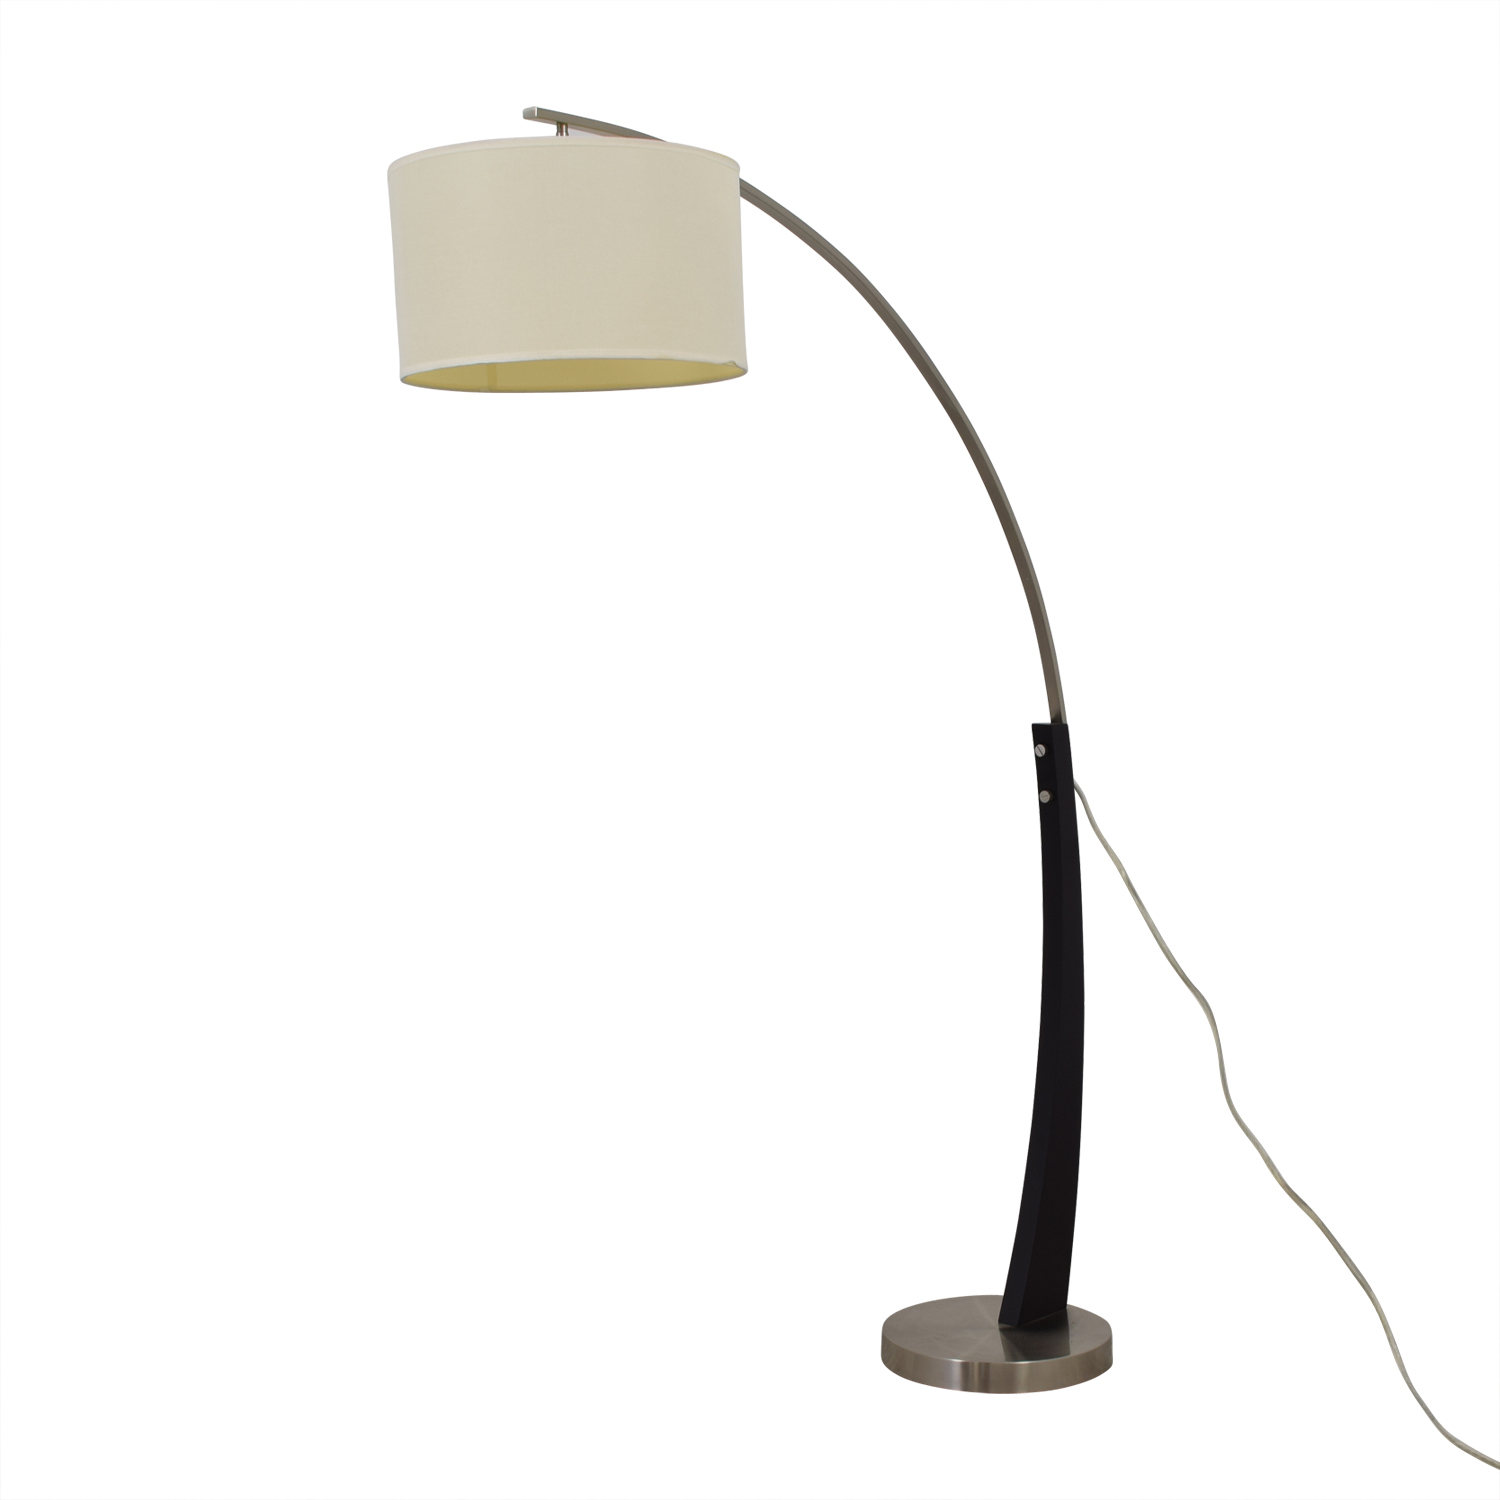 55 off nova nova floor lamp decor nova floor lamp sale aloadofball Image collections